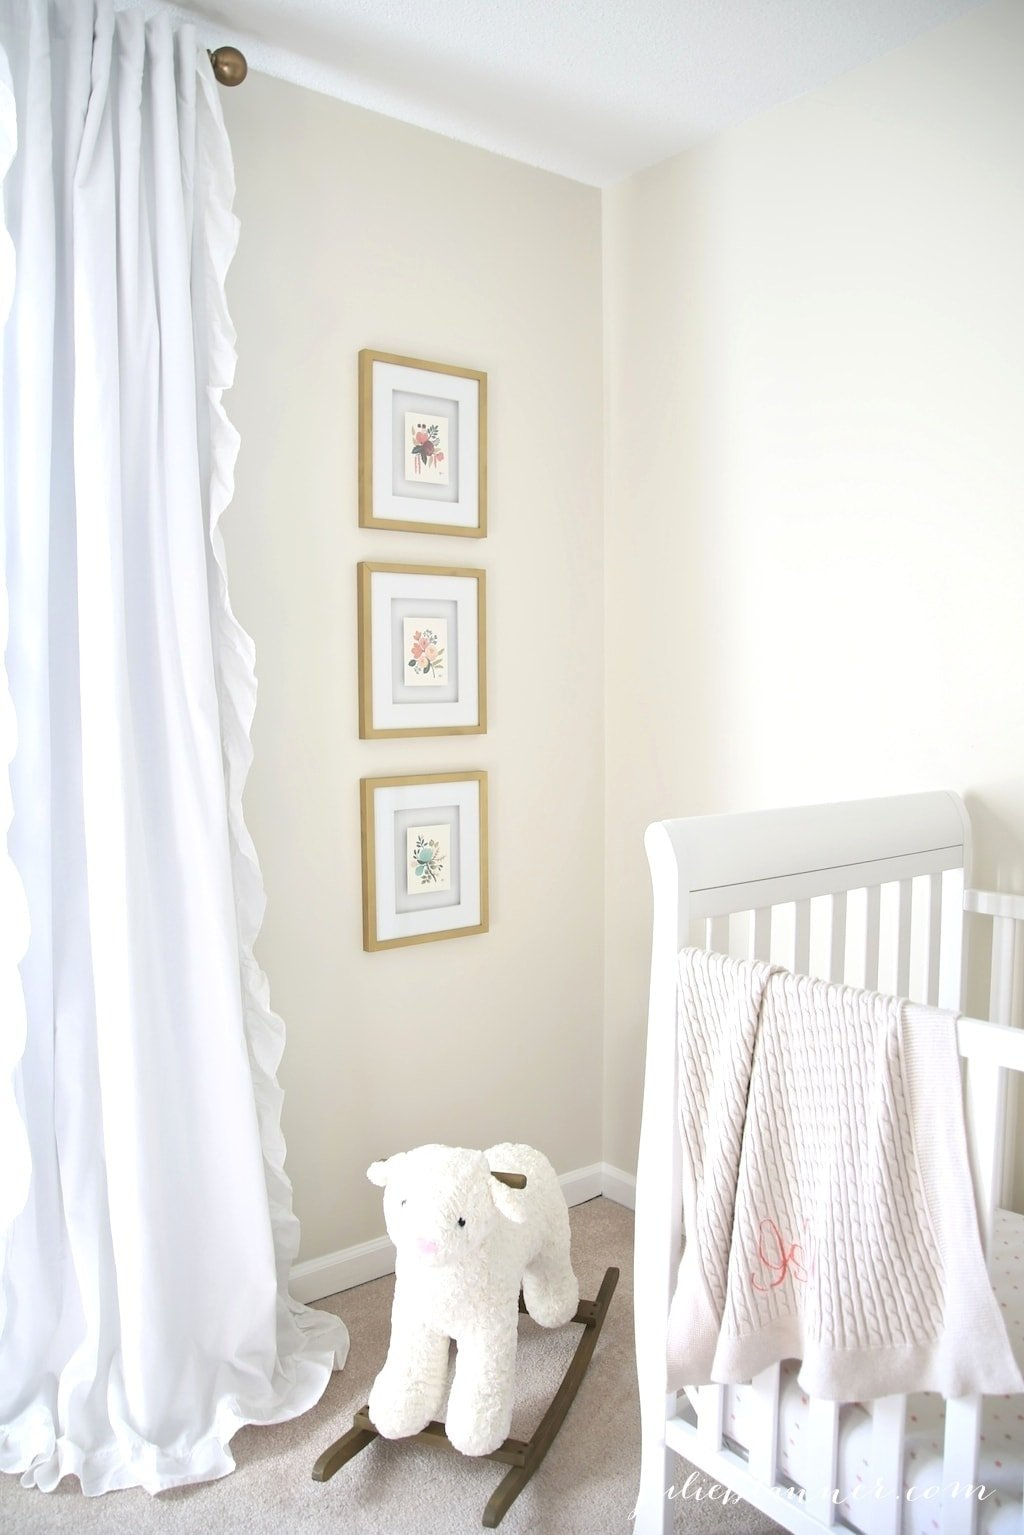 A nursery vignette - simple ideas to create a beautiful nursery on a budget